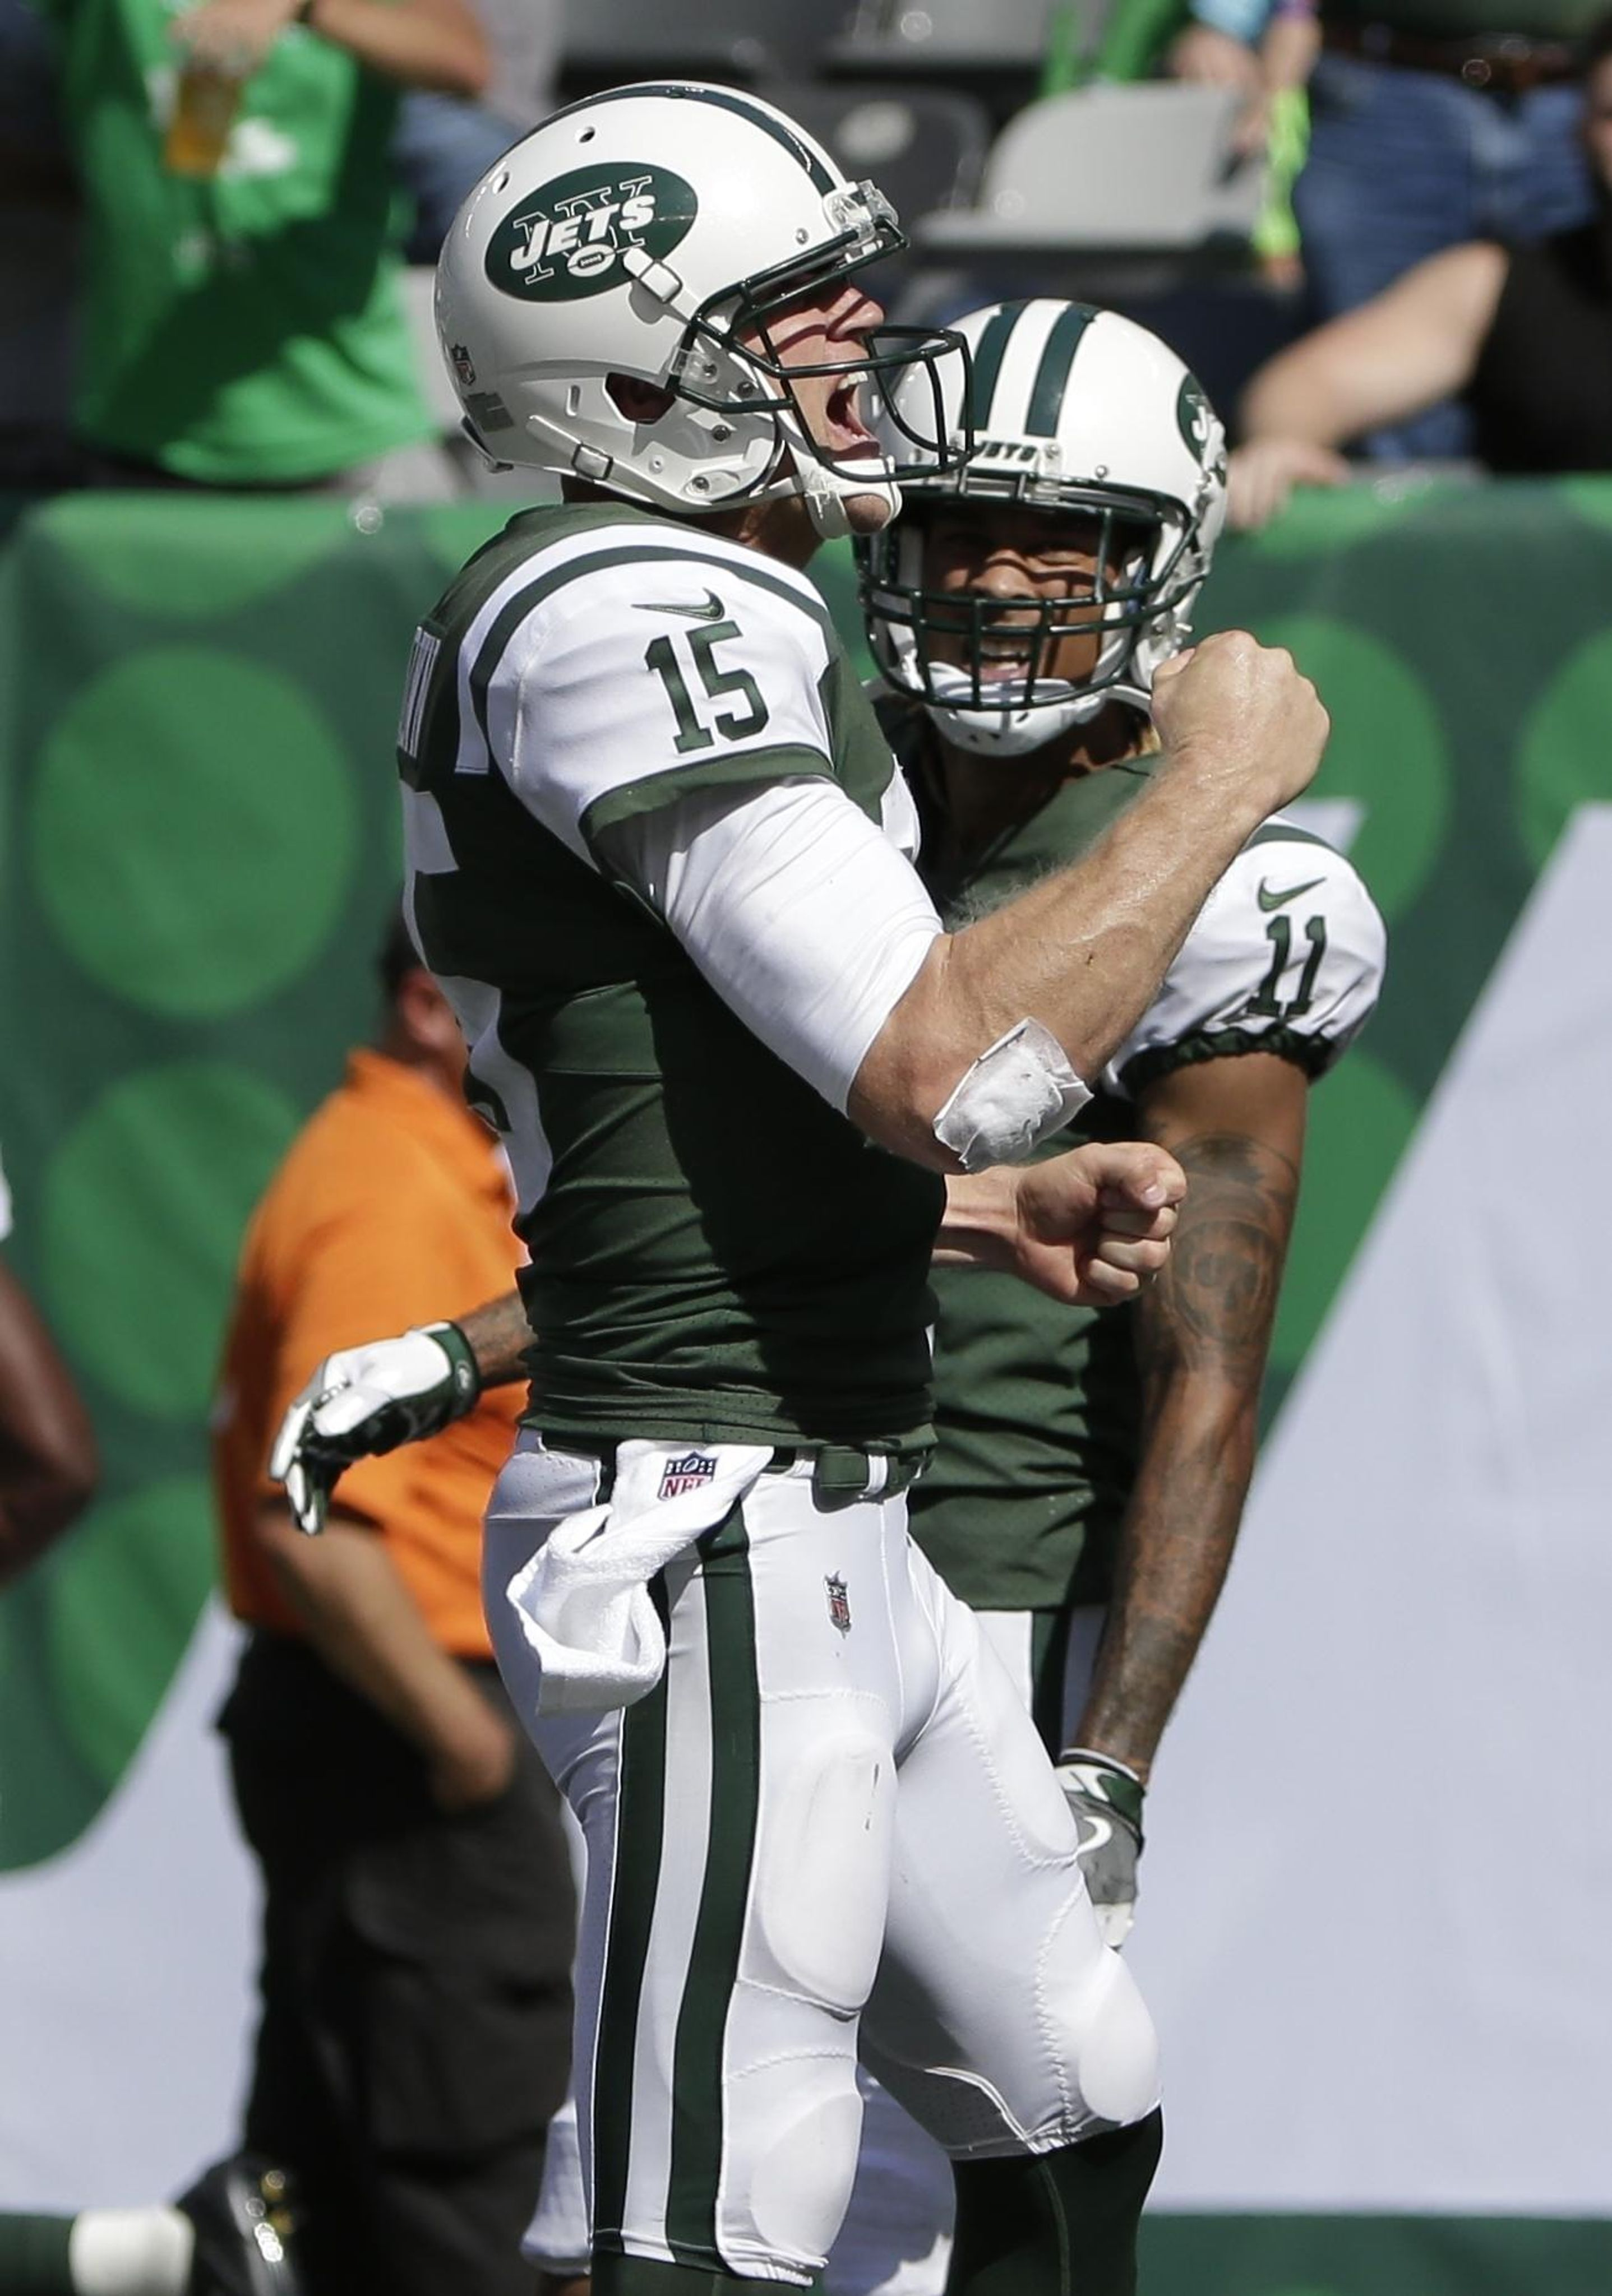 Dolphins_jets_football_23110_s2875x4096